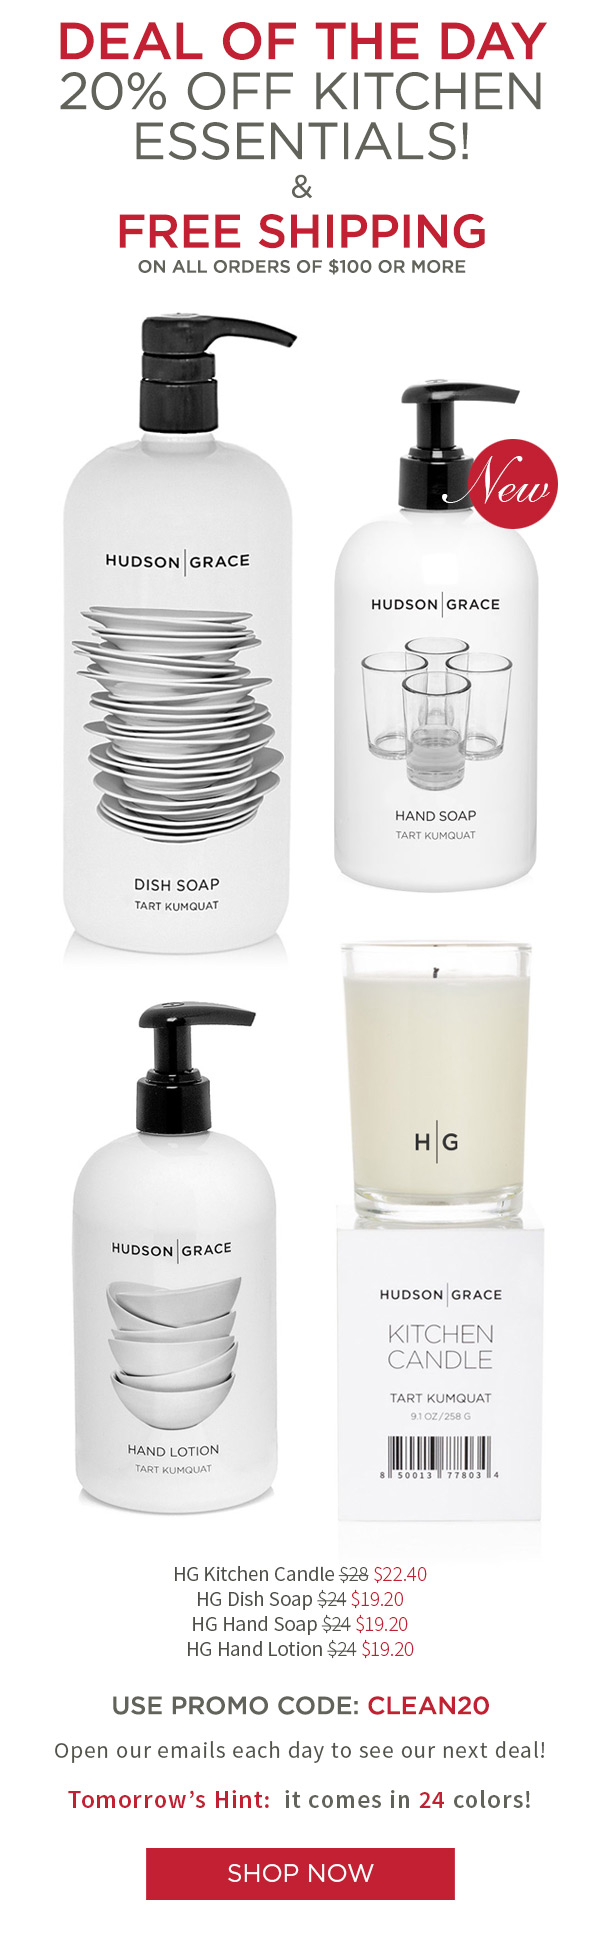 Deal of the day - 20% off Kitchen Essentials! And Free Shipping on all orders of $100. HG Kitchen Candle $22.40 .?HG Dish Soap $19.20 .?HG Hand Soap $19.20 .?HG Hand Lotion $19.20. USE PROMO CODE: CLEAN20. Open our emails each day to see our next deal! Tomorrow's Hint: it comes in 24 colors!